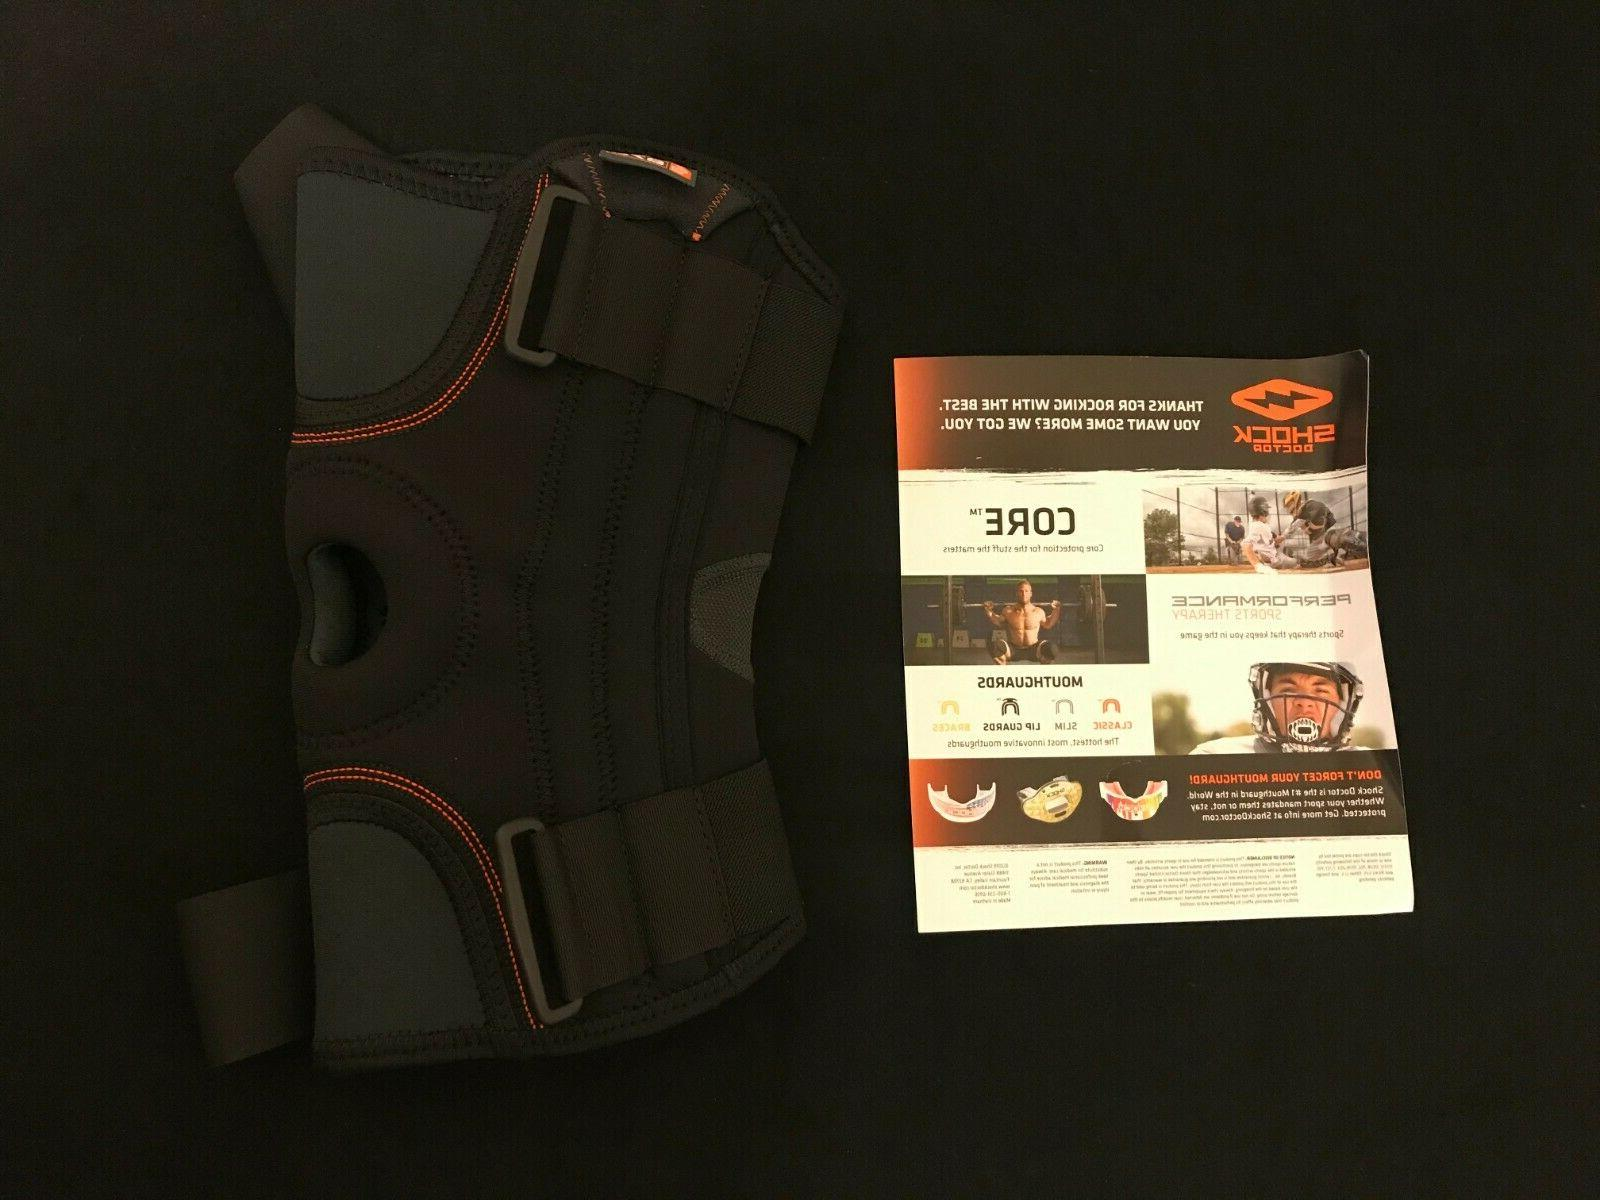 no box 870 knee stabilizer brace support